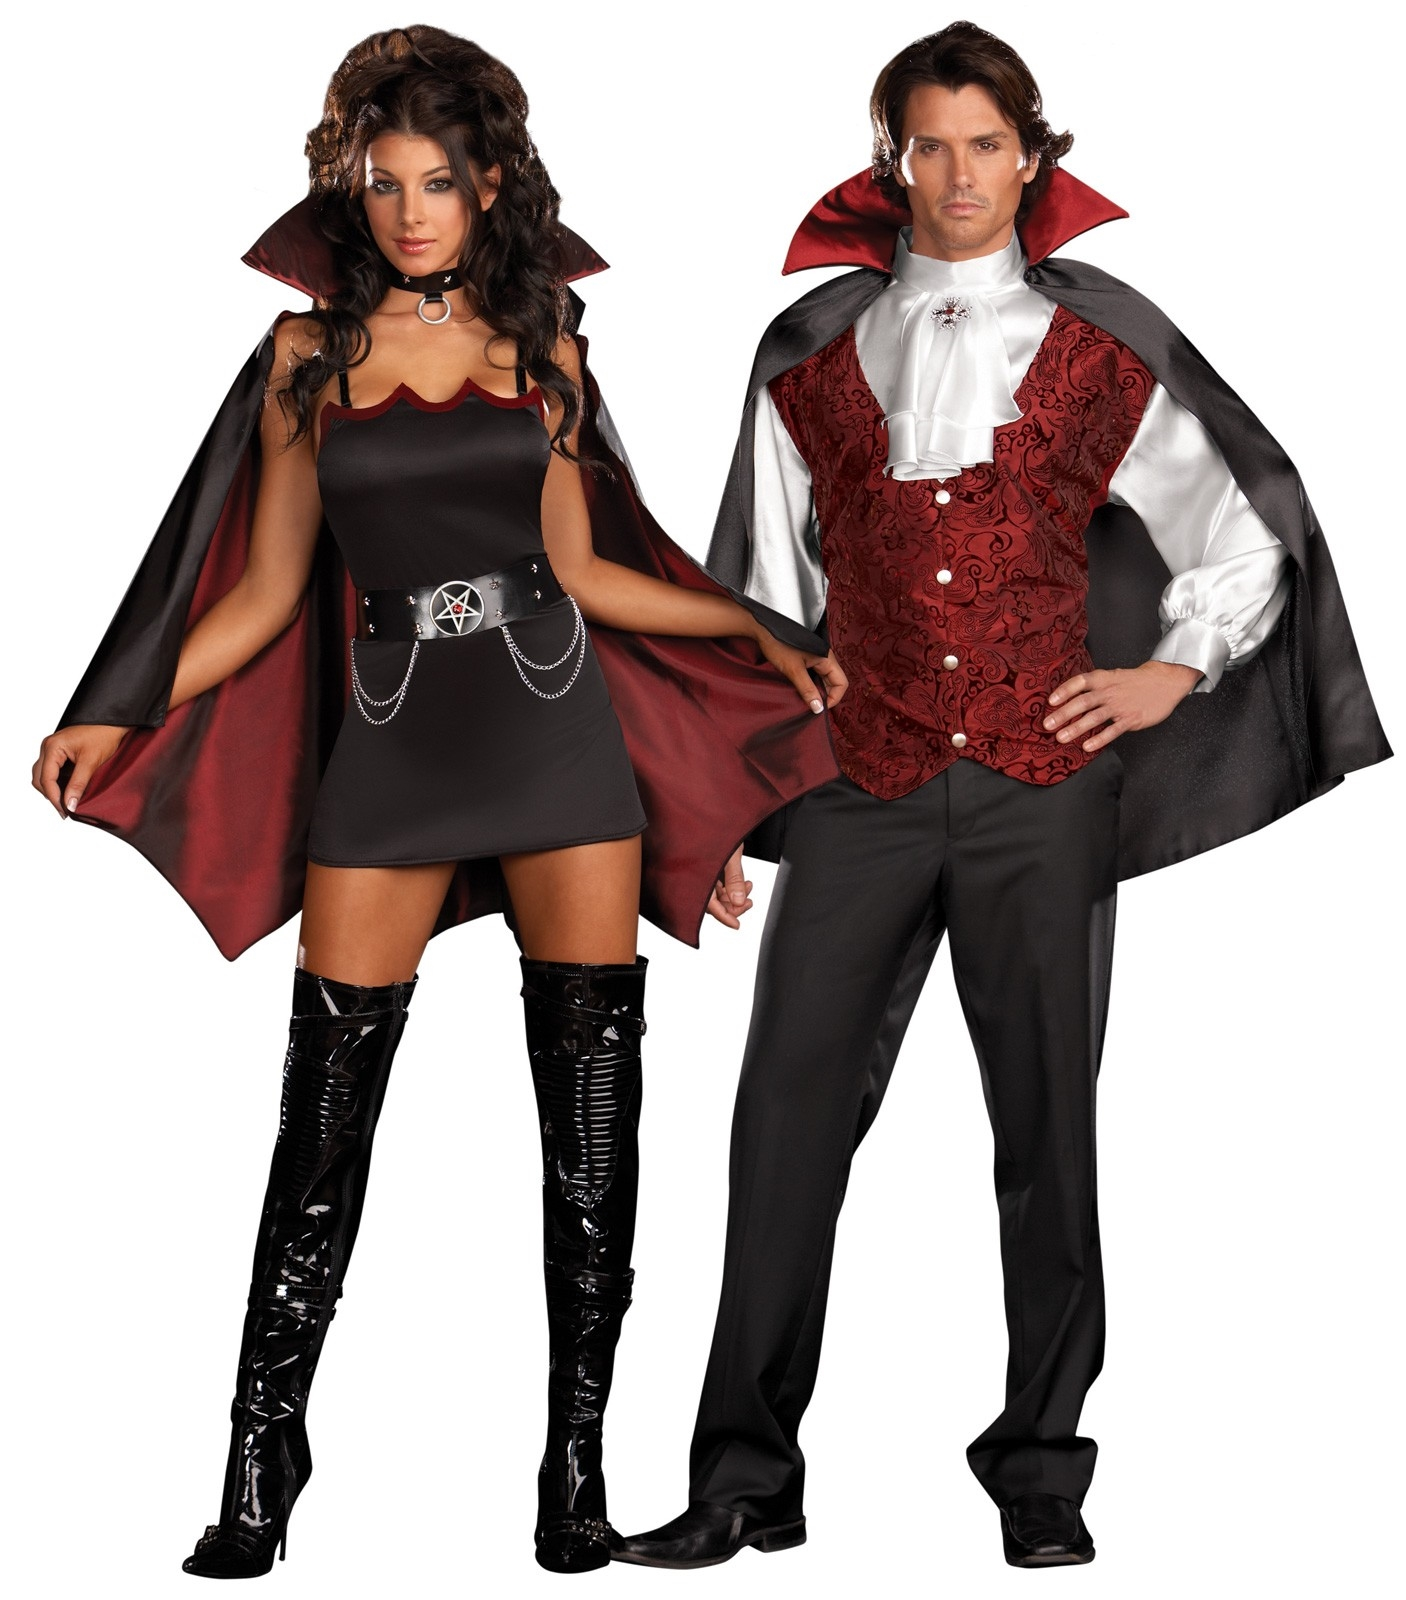 Halloween Costumes For Adult Couples 2016-2017